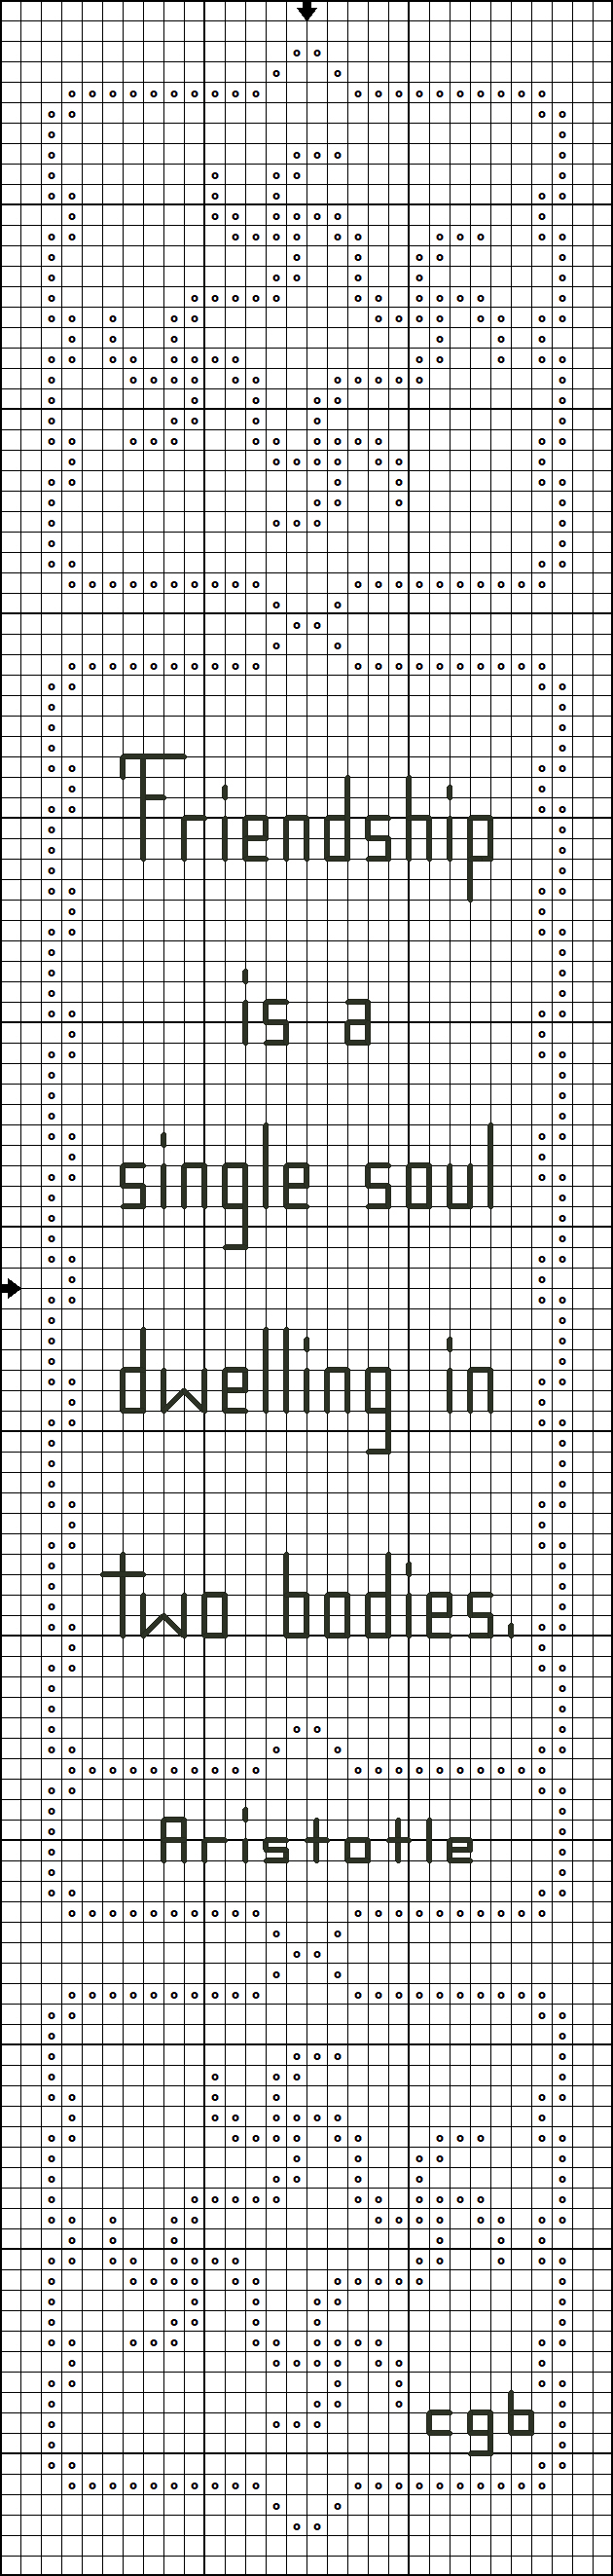 How To Make Your Own Cross Stitch Pattern Awesome Design Ideas